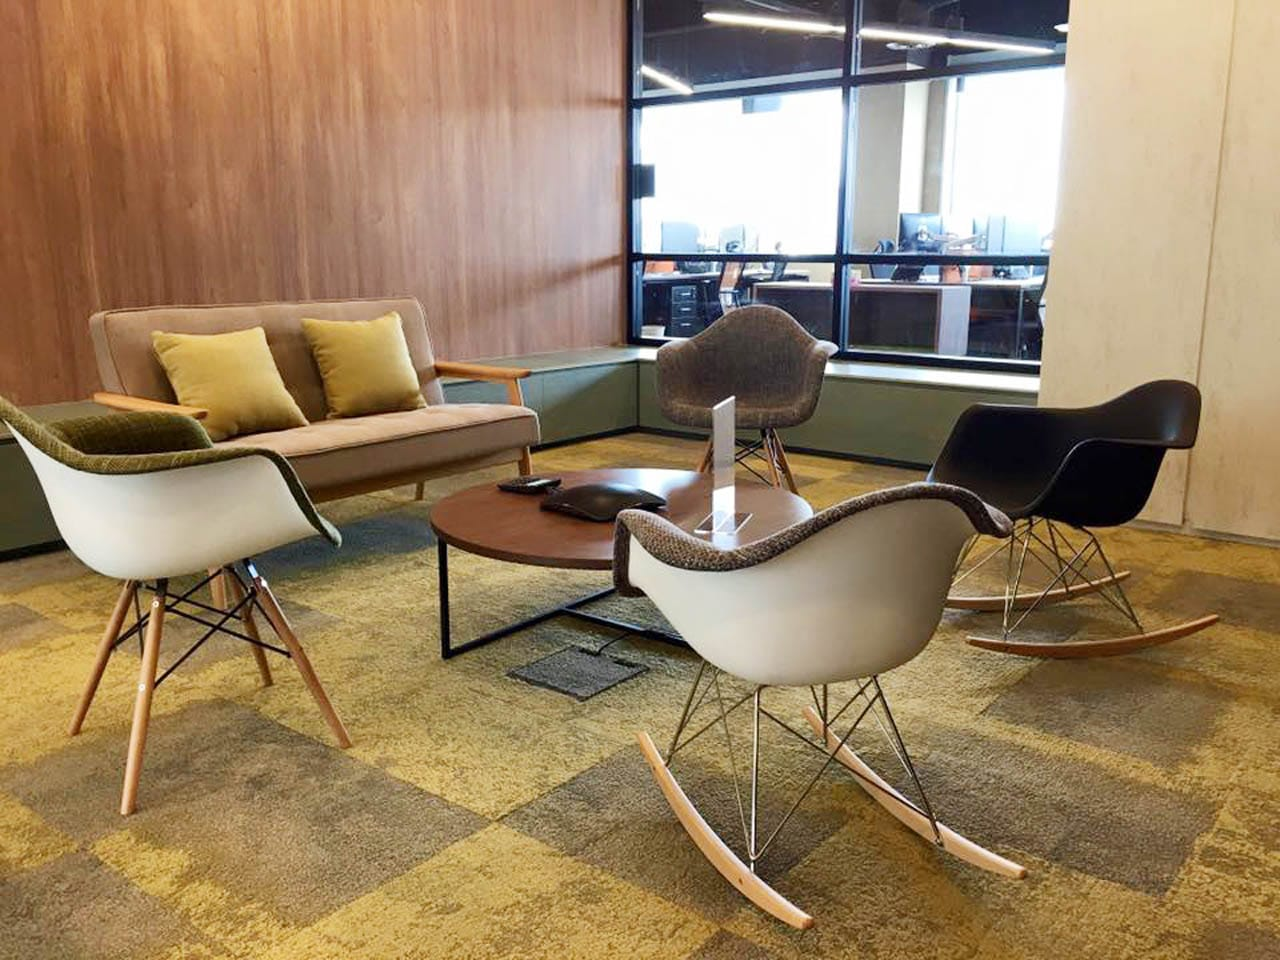 HomeAway - UE Square | Products Seen: [Agatha 2 Seater Sofa, Gum - Half Fabric + Tower Armchair, Gum - Half Fabric + Rocking Armchair, Gum - PP + Rocking Armchair & Satchie Modular Coffee Table]<br />